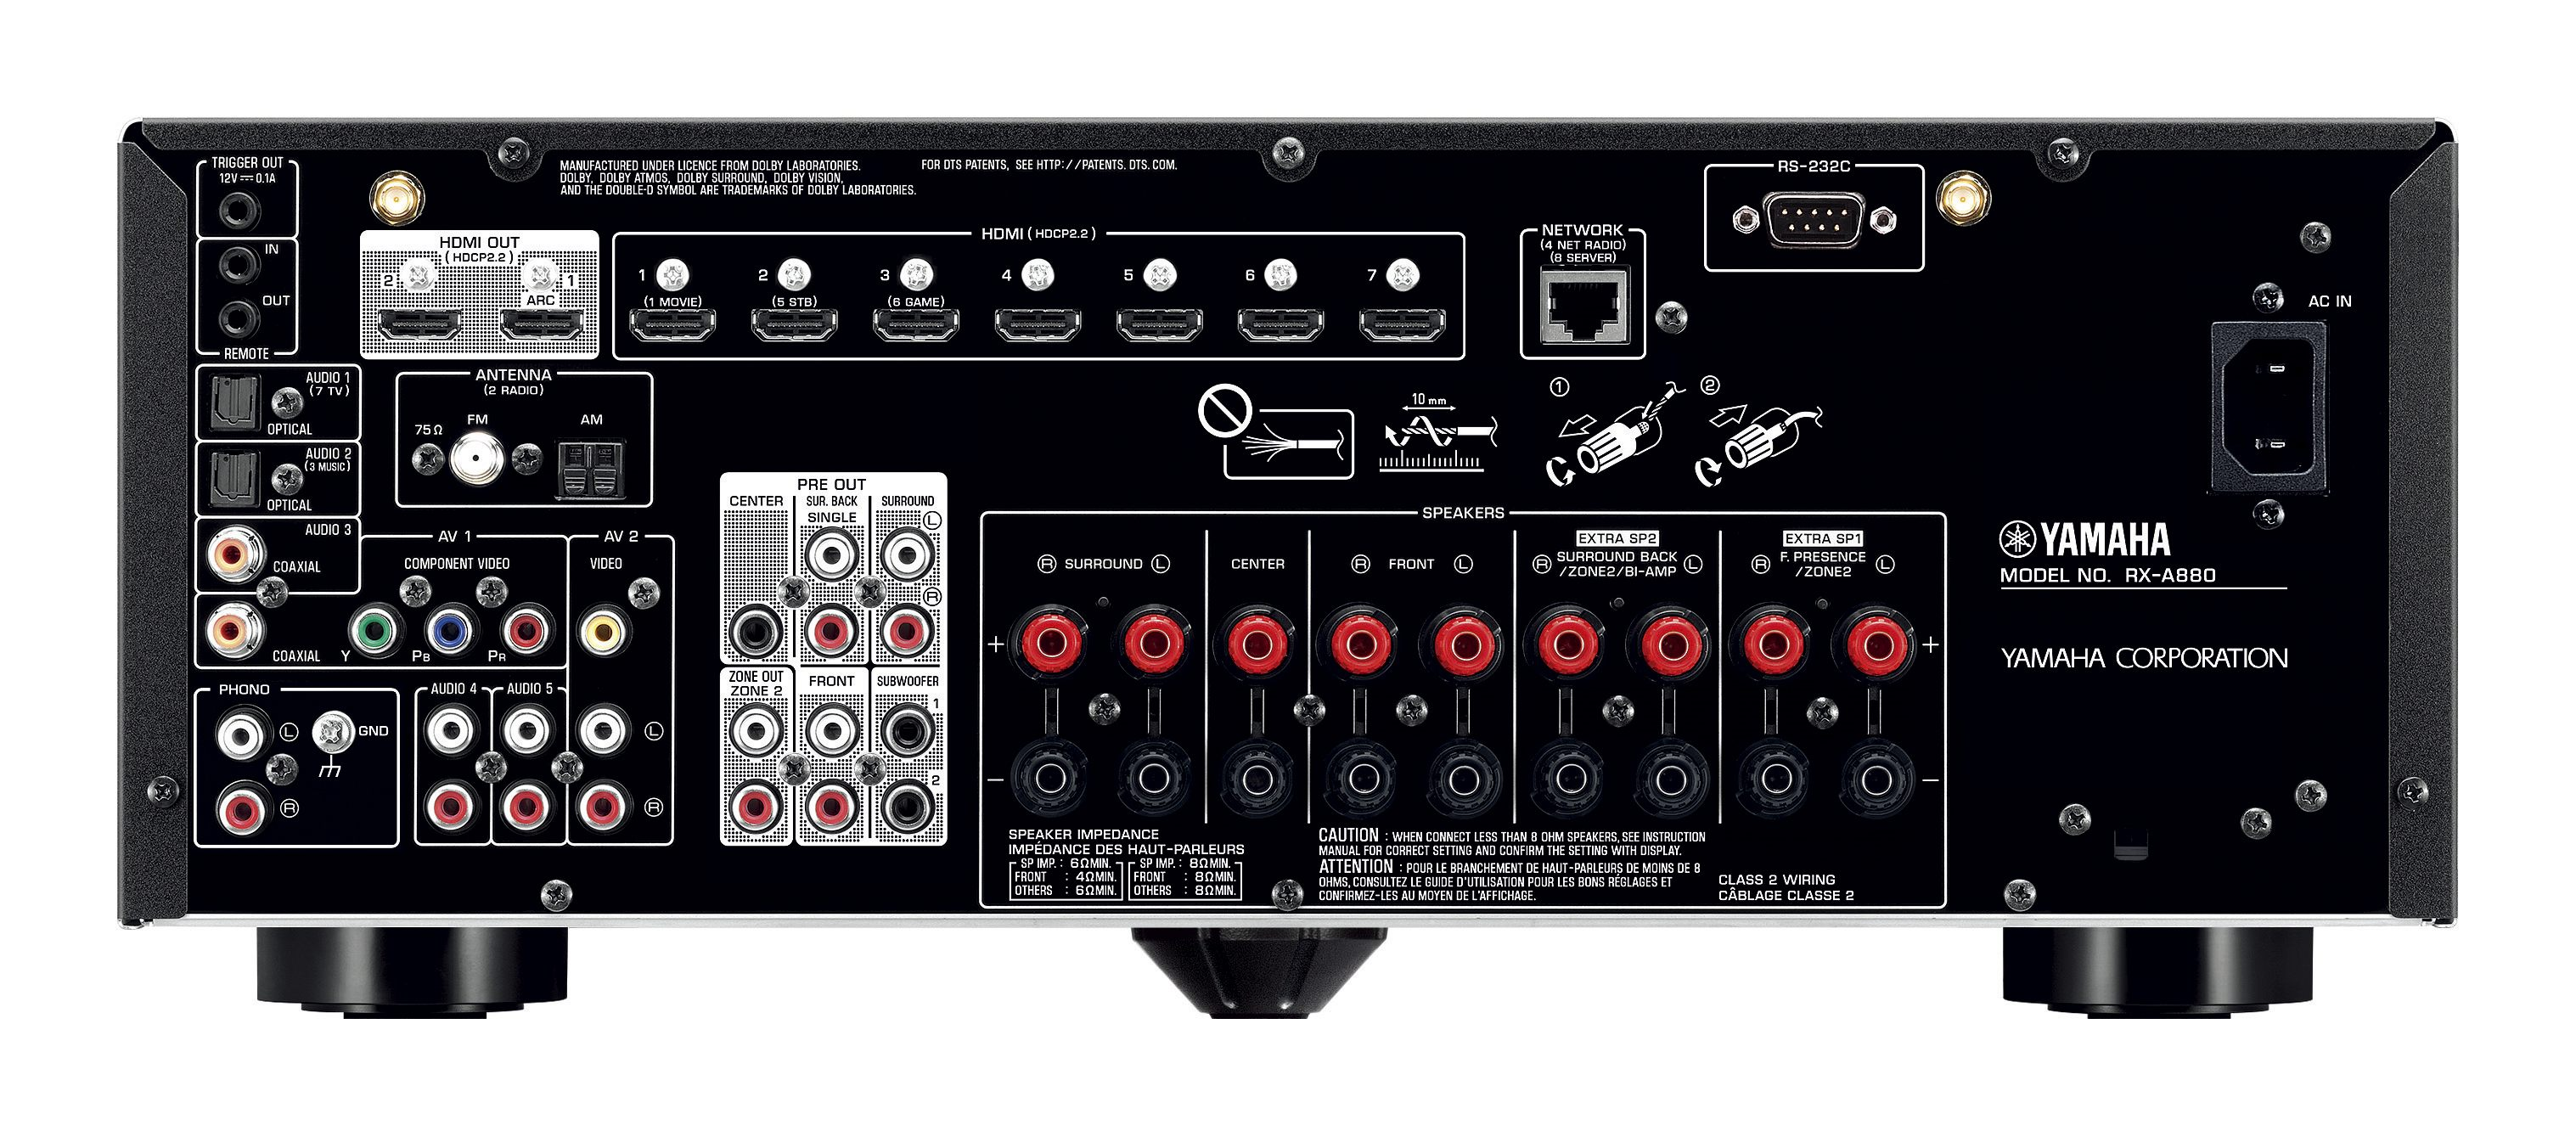 RX-A880 - Specs - AV Receivers - Audio & Visual - Products